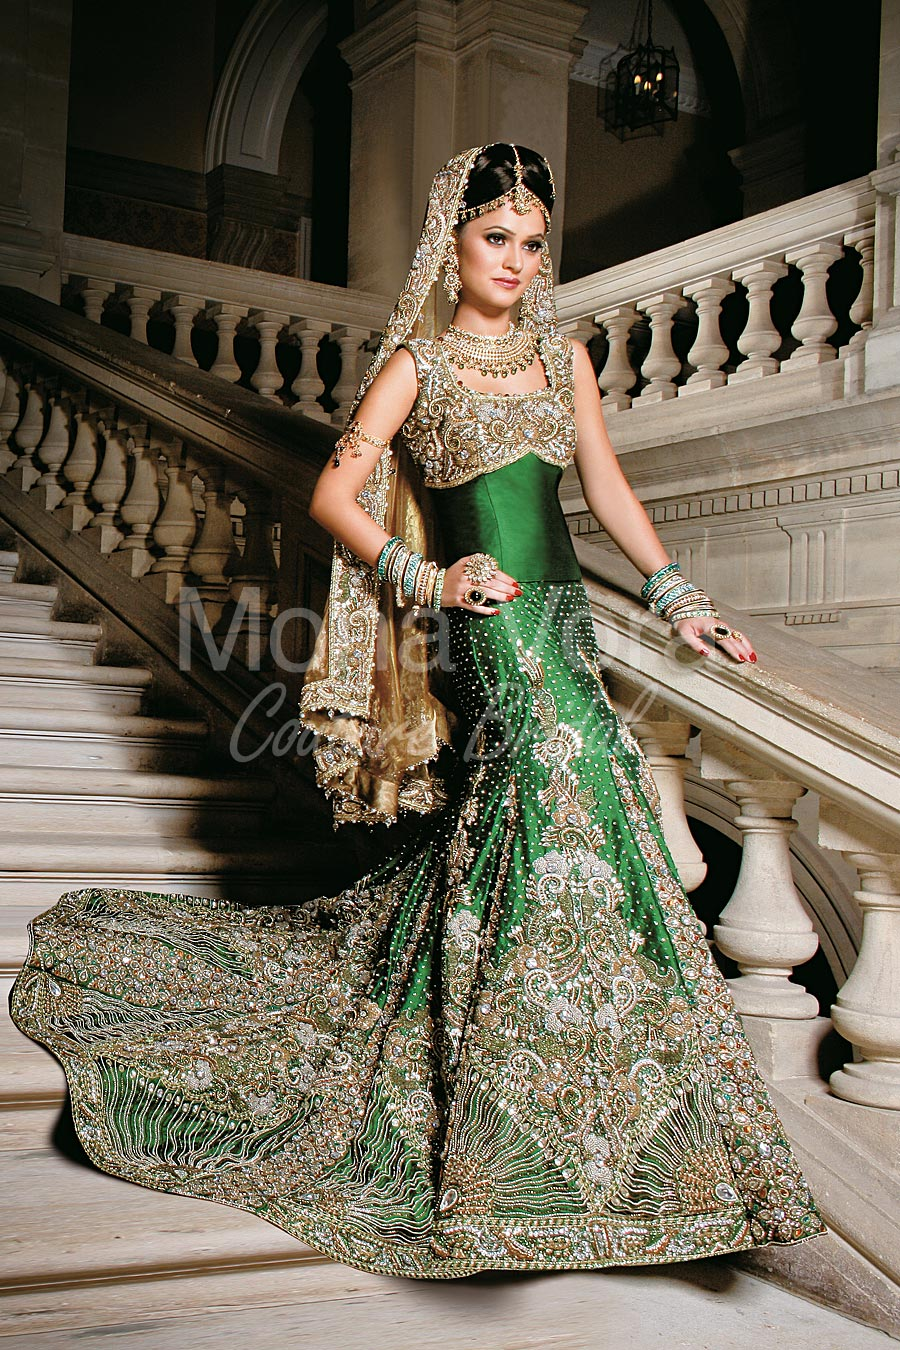 Buy Different Vibrant Colors Of Asian Wedding Dresses And Bridal ...